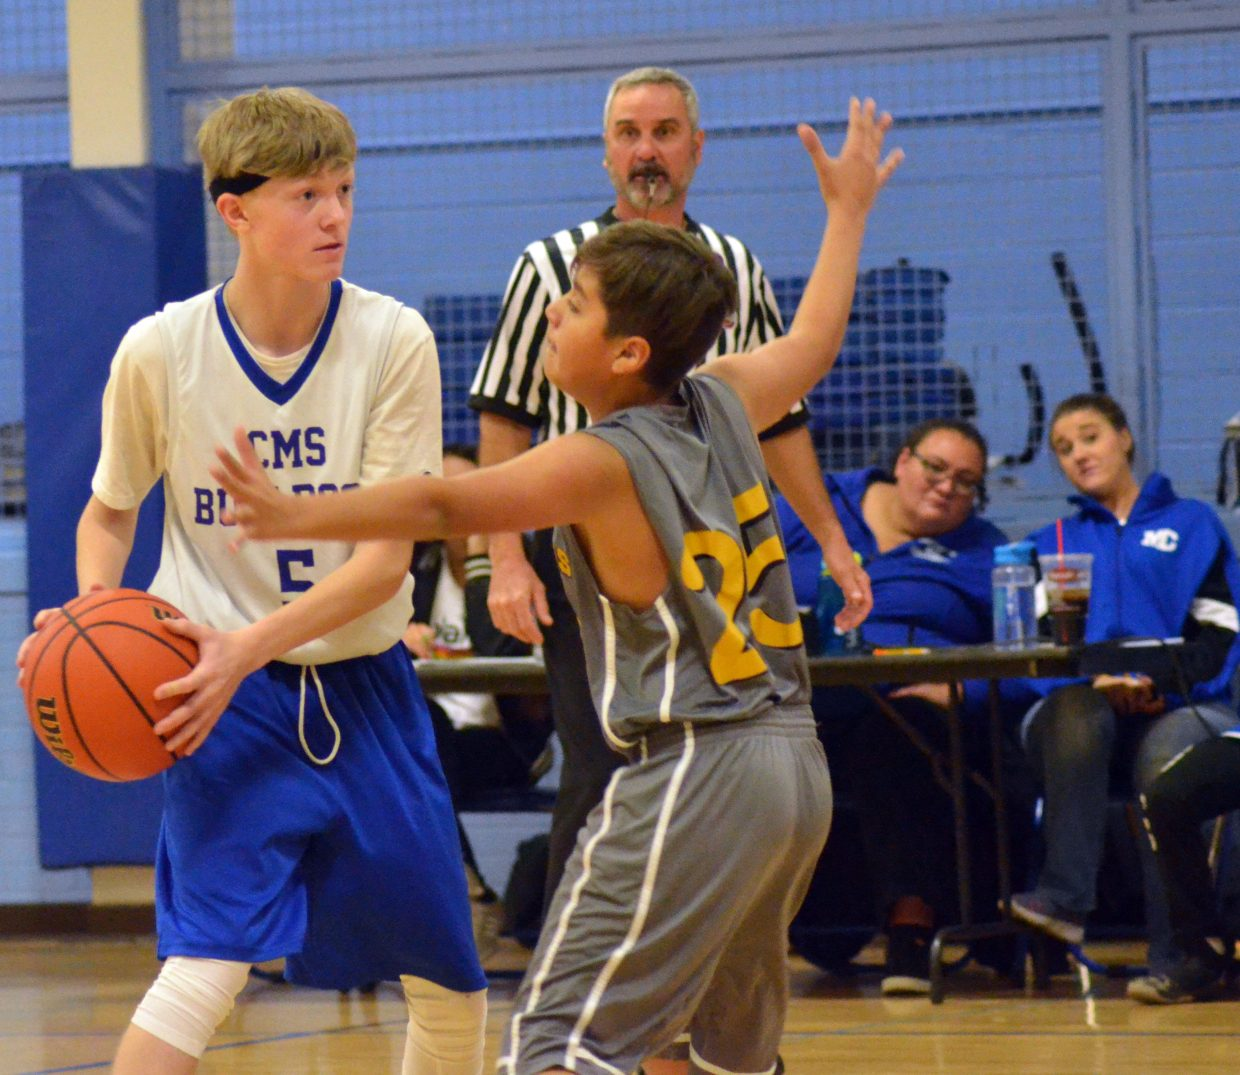 Craig Middle School's Lance Bracket looks to get past his Meeker opponent.